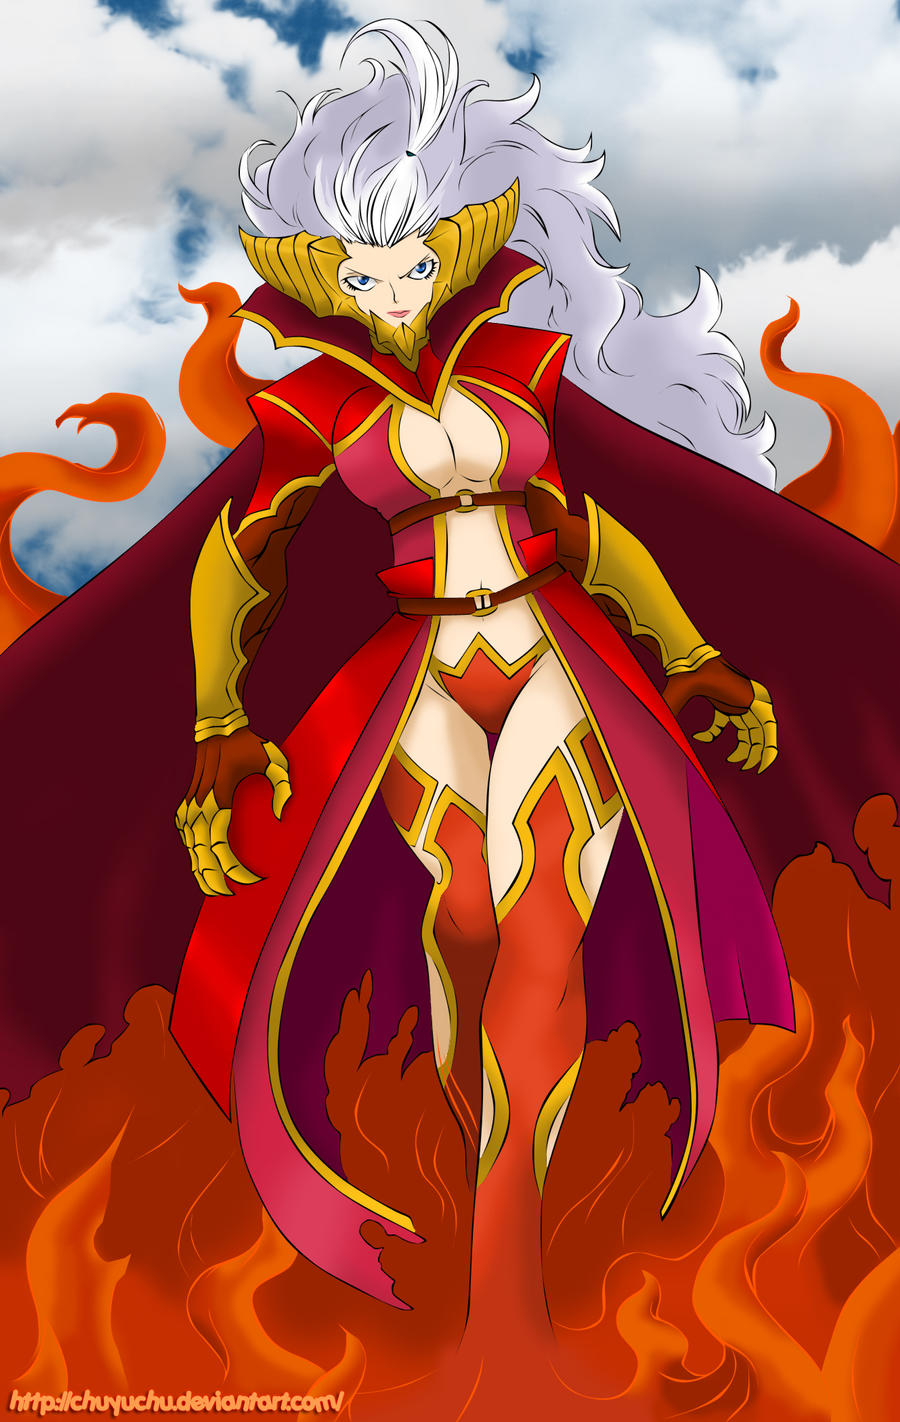 Mirajane Strauss In Satan Soul Sitri Mode By Chuyuchu On Deviantart He is a great prince, and appeareth at first with a leopard's head and the wings of a gryphon, but after the command of the master of the exorcism he putteth on. mirajane strauss in satan soul sitri